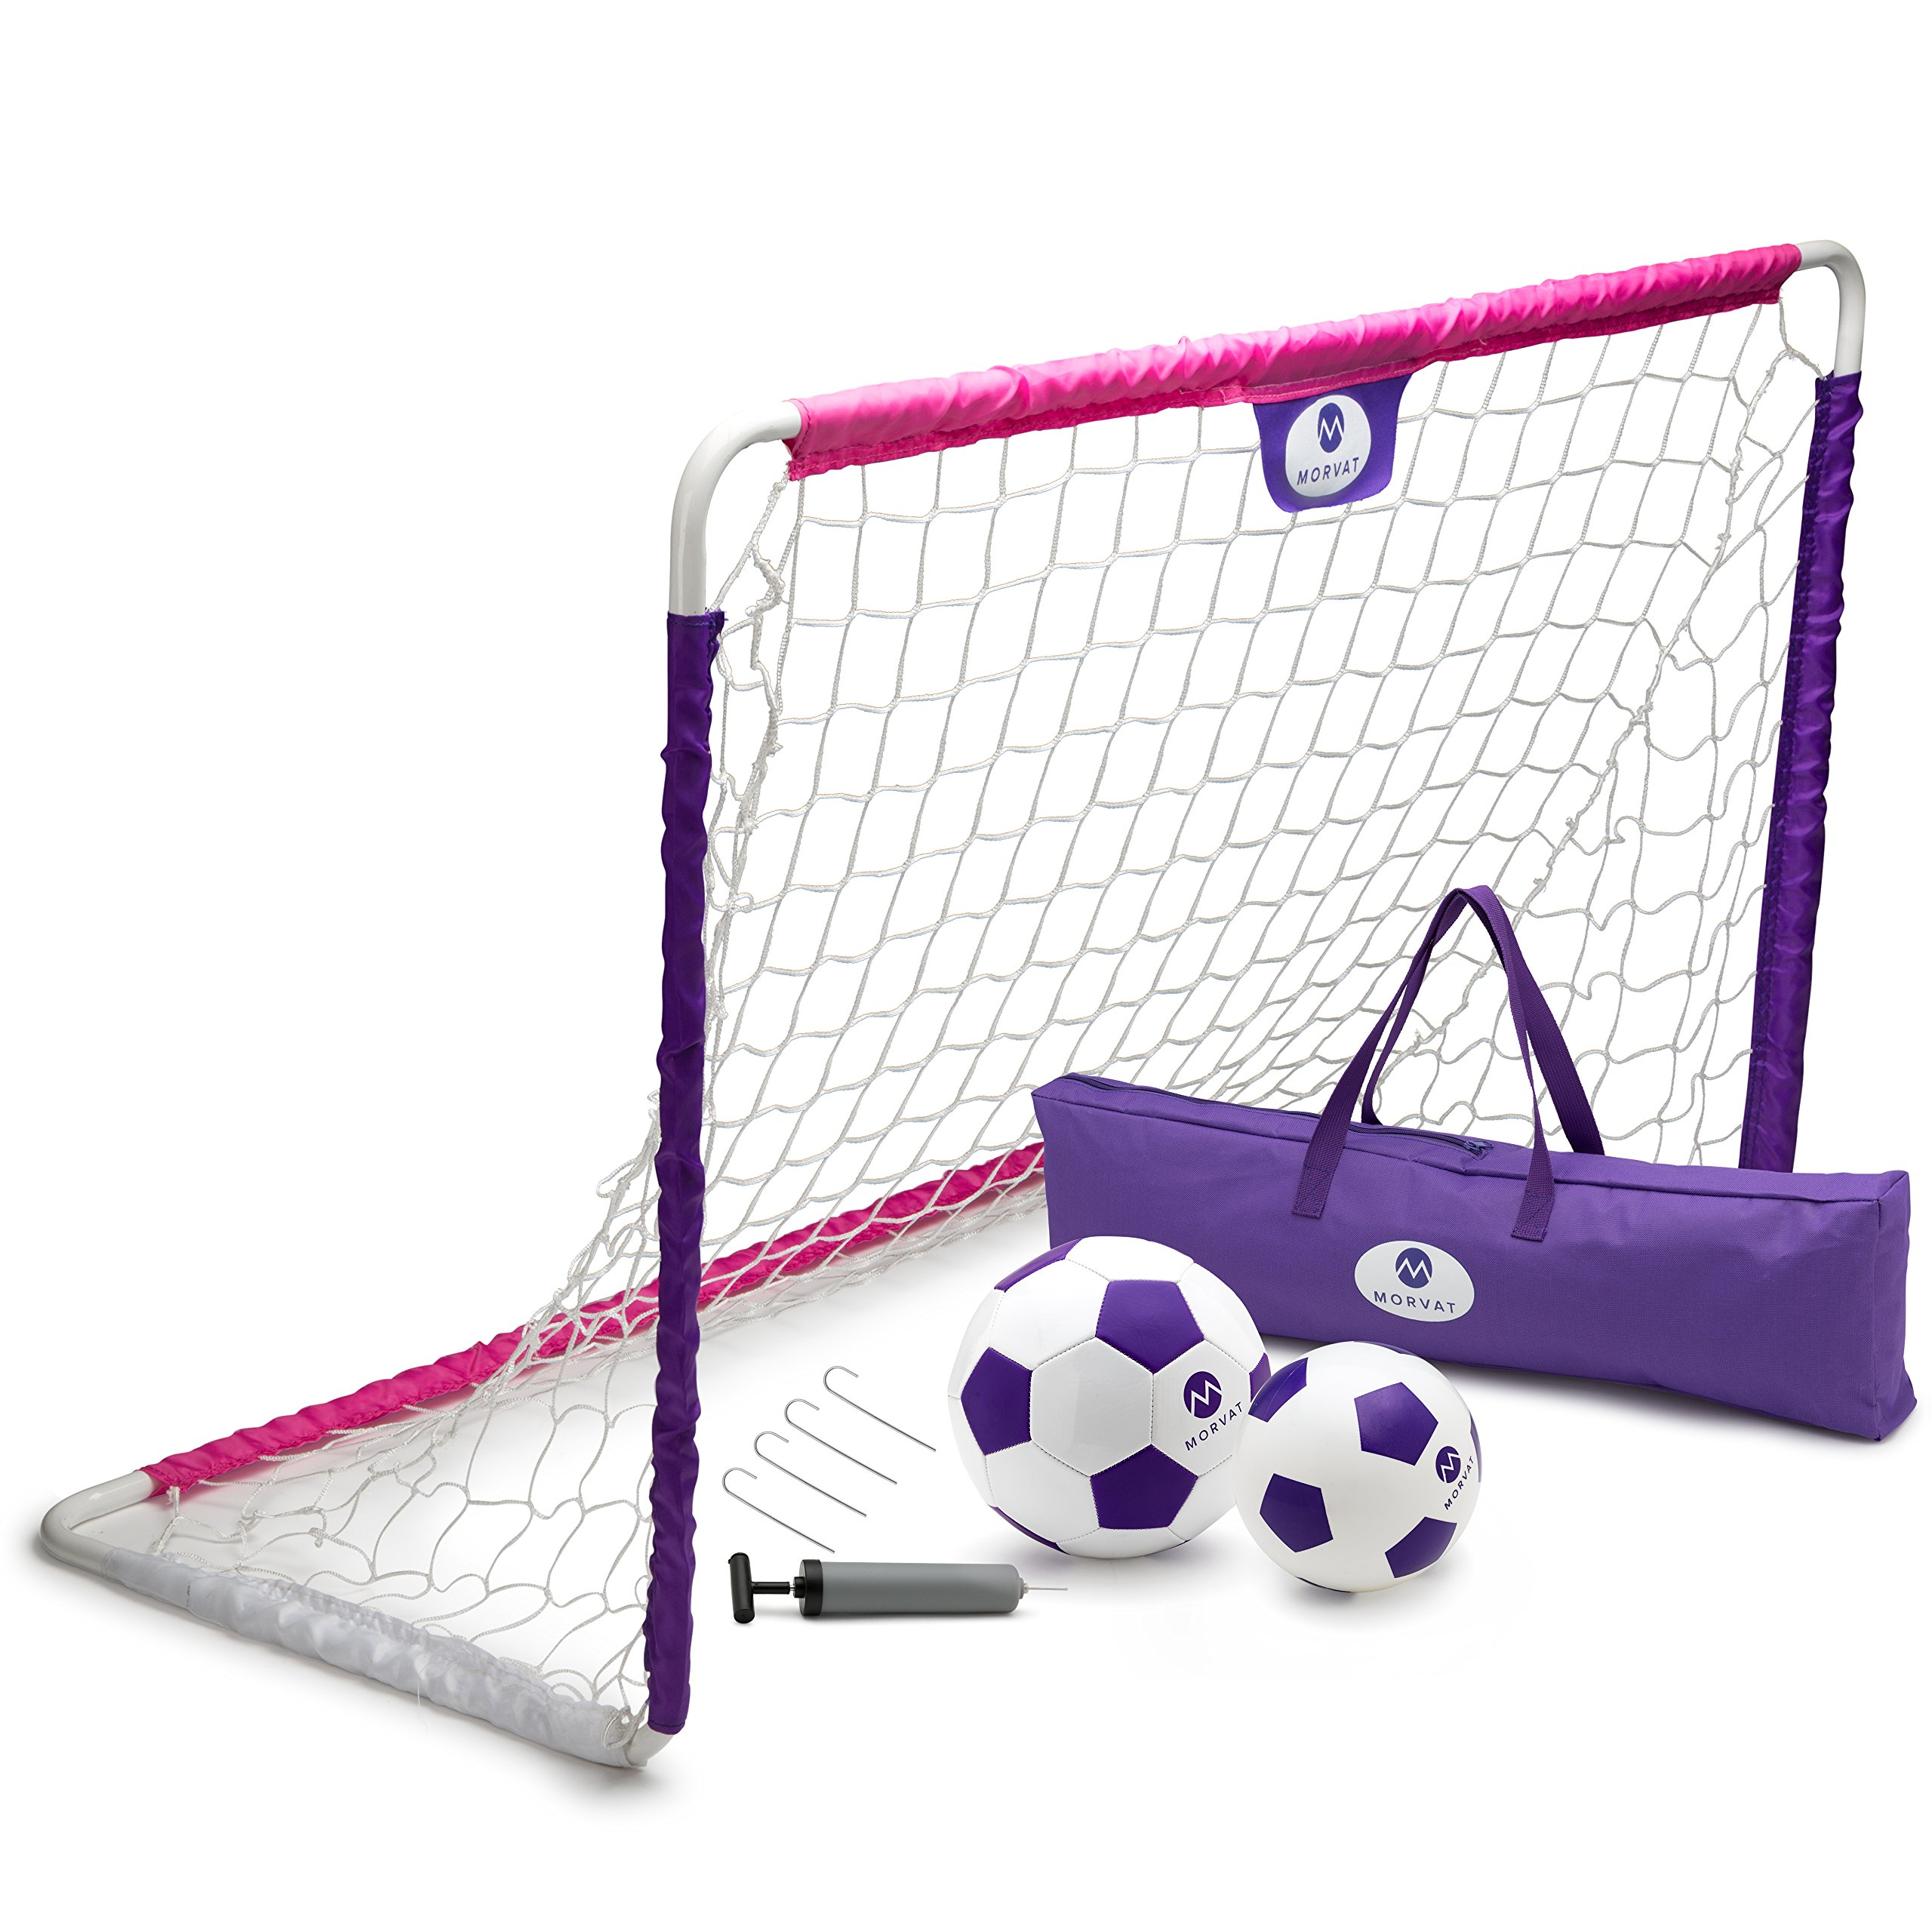 Morvat Soccer Goal Set for Backyard, Outdoor Games Soccer Net, Soccer Goals for Kids, Soccer Accessories, Pop Up Soccer Goals, Includes Goal Net, Soccer Ball, Junior Ball and More, Pink and Purple by Morvat